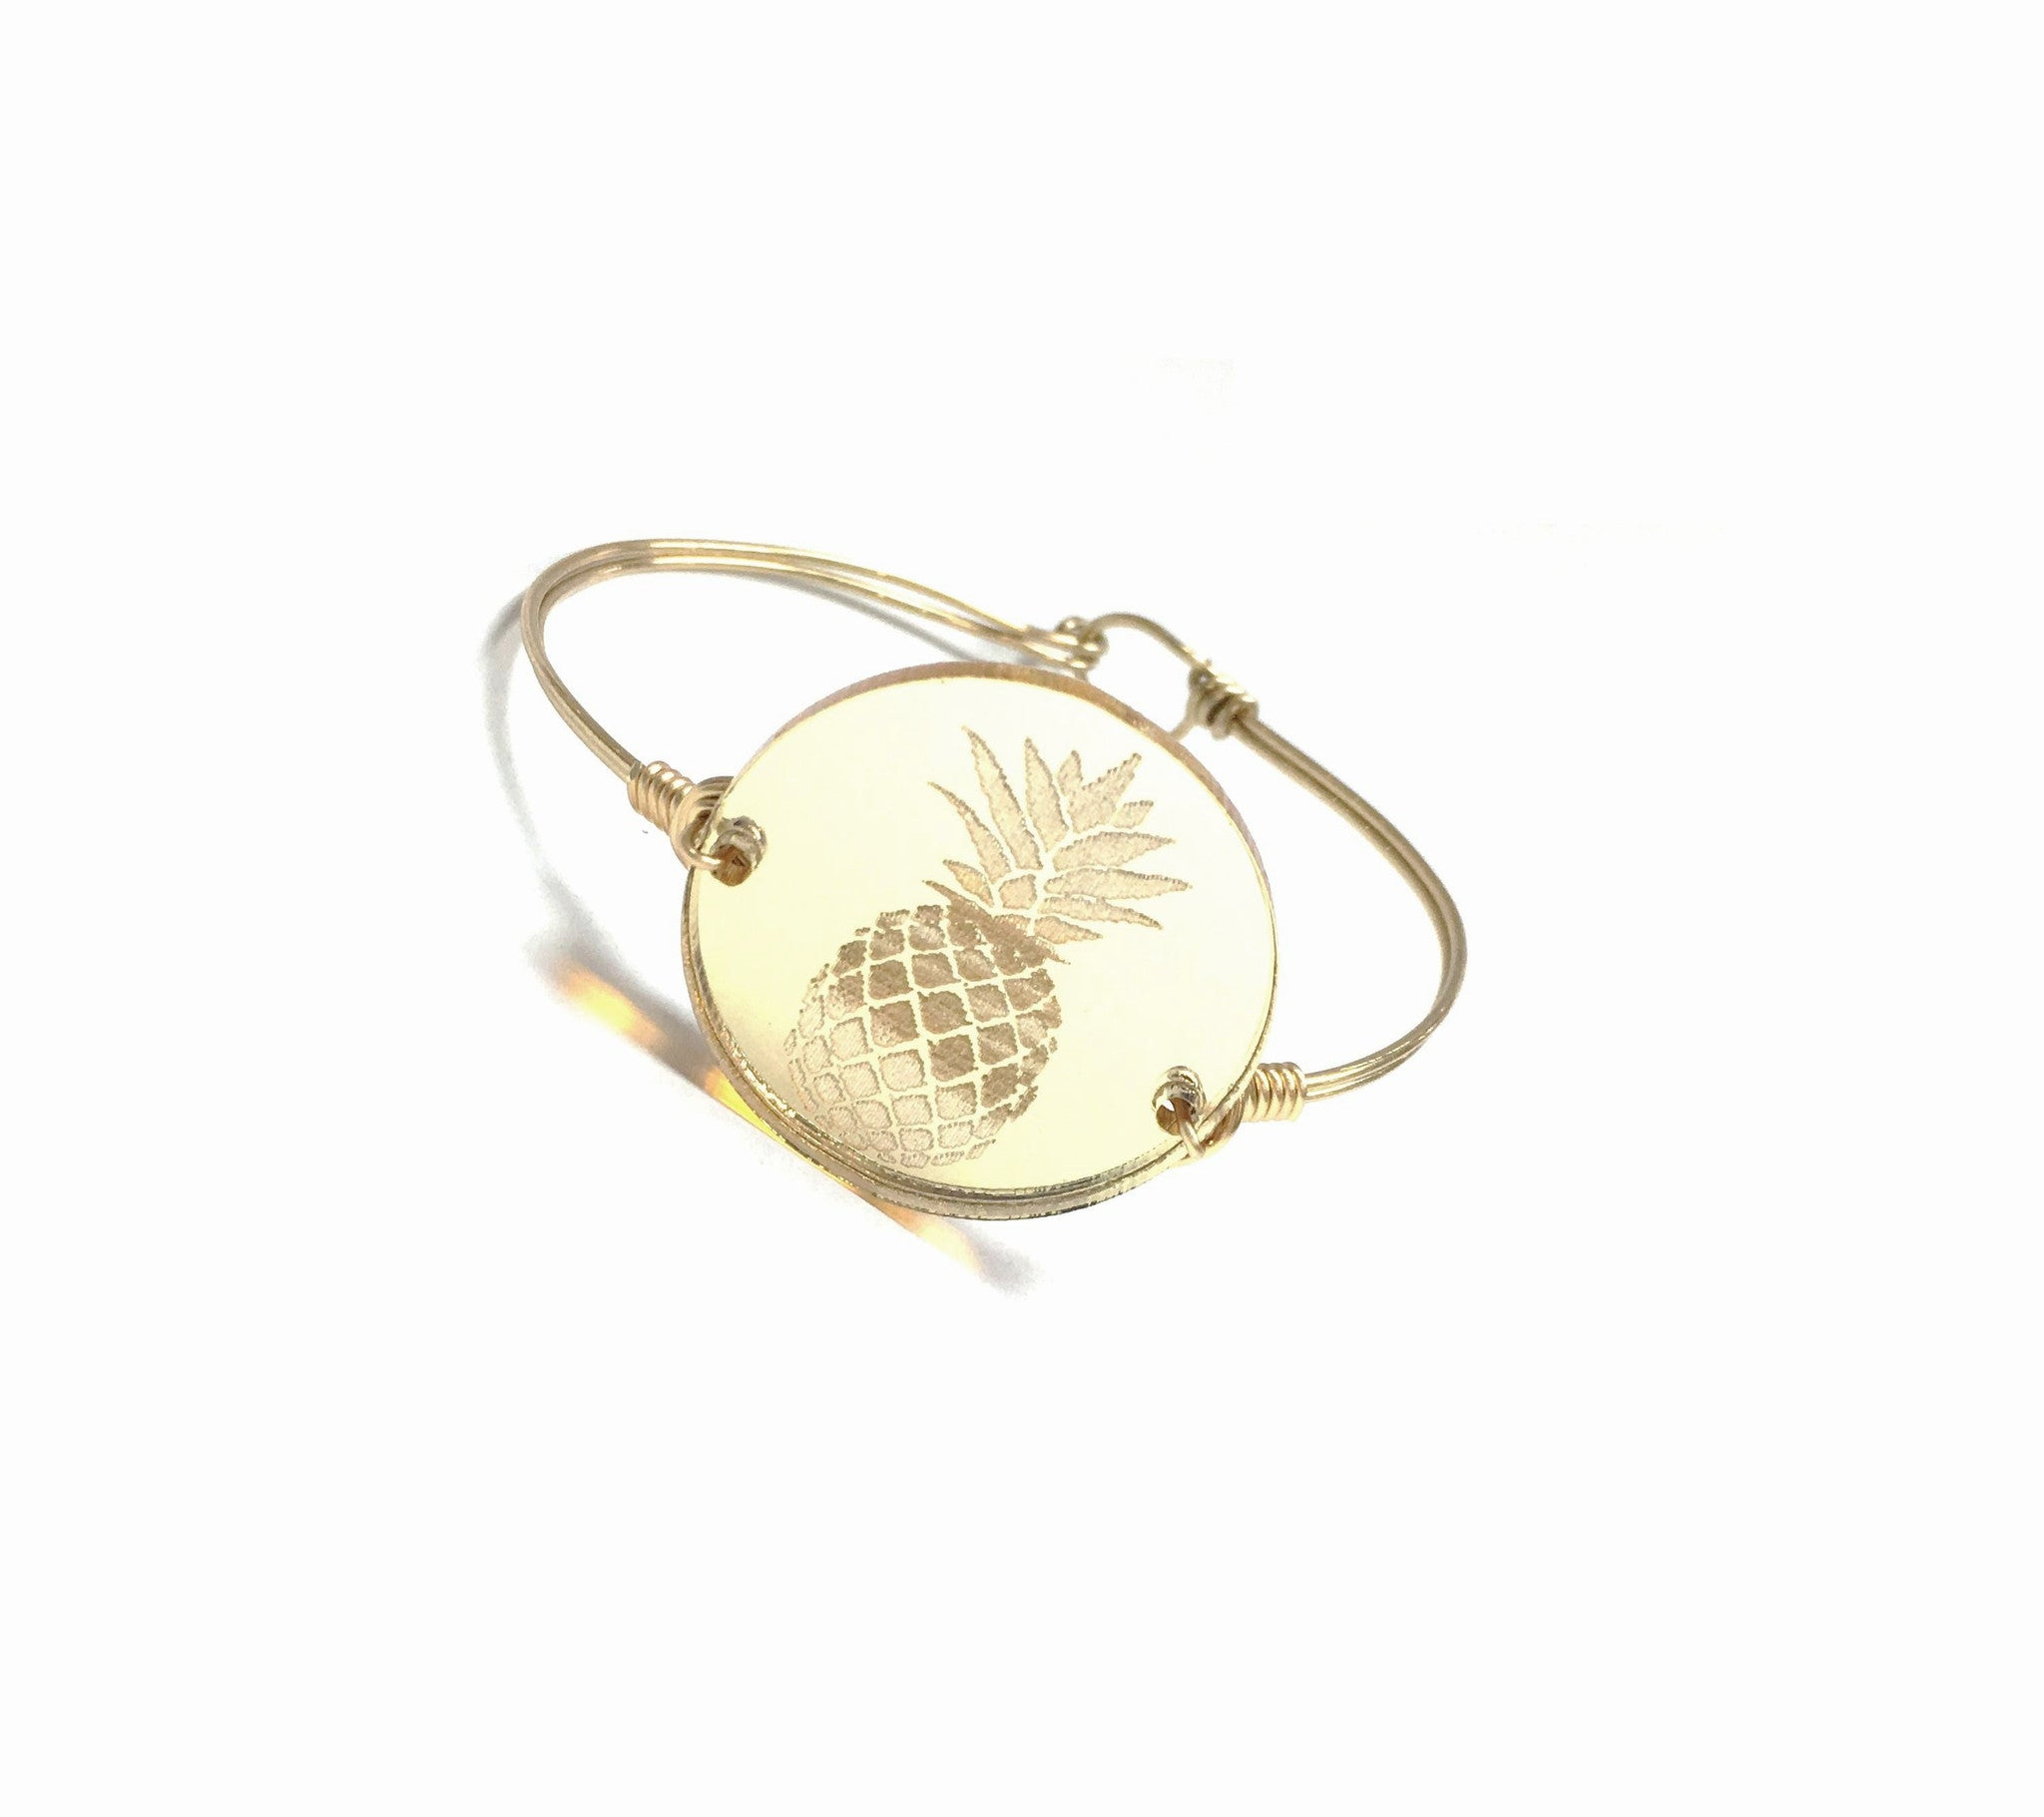 DIY Jewelry Kit - From The Blog - Etched Pineapple Acrylic Coin Wire Bangle Bracelet